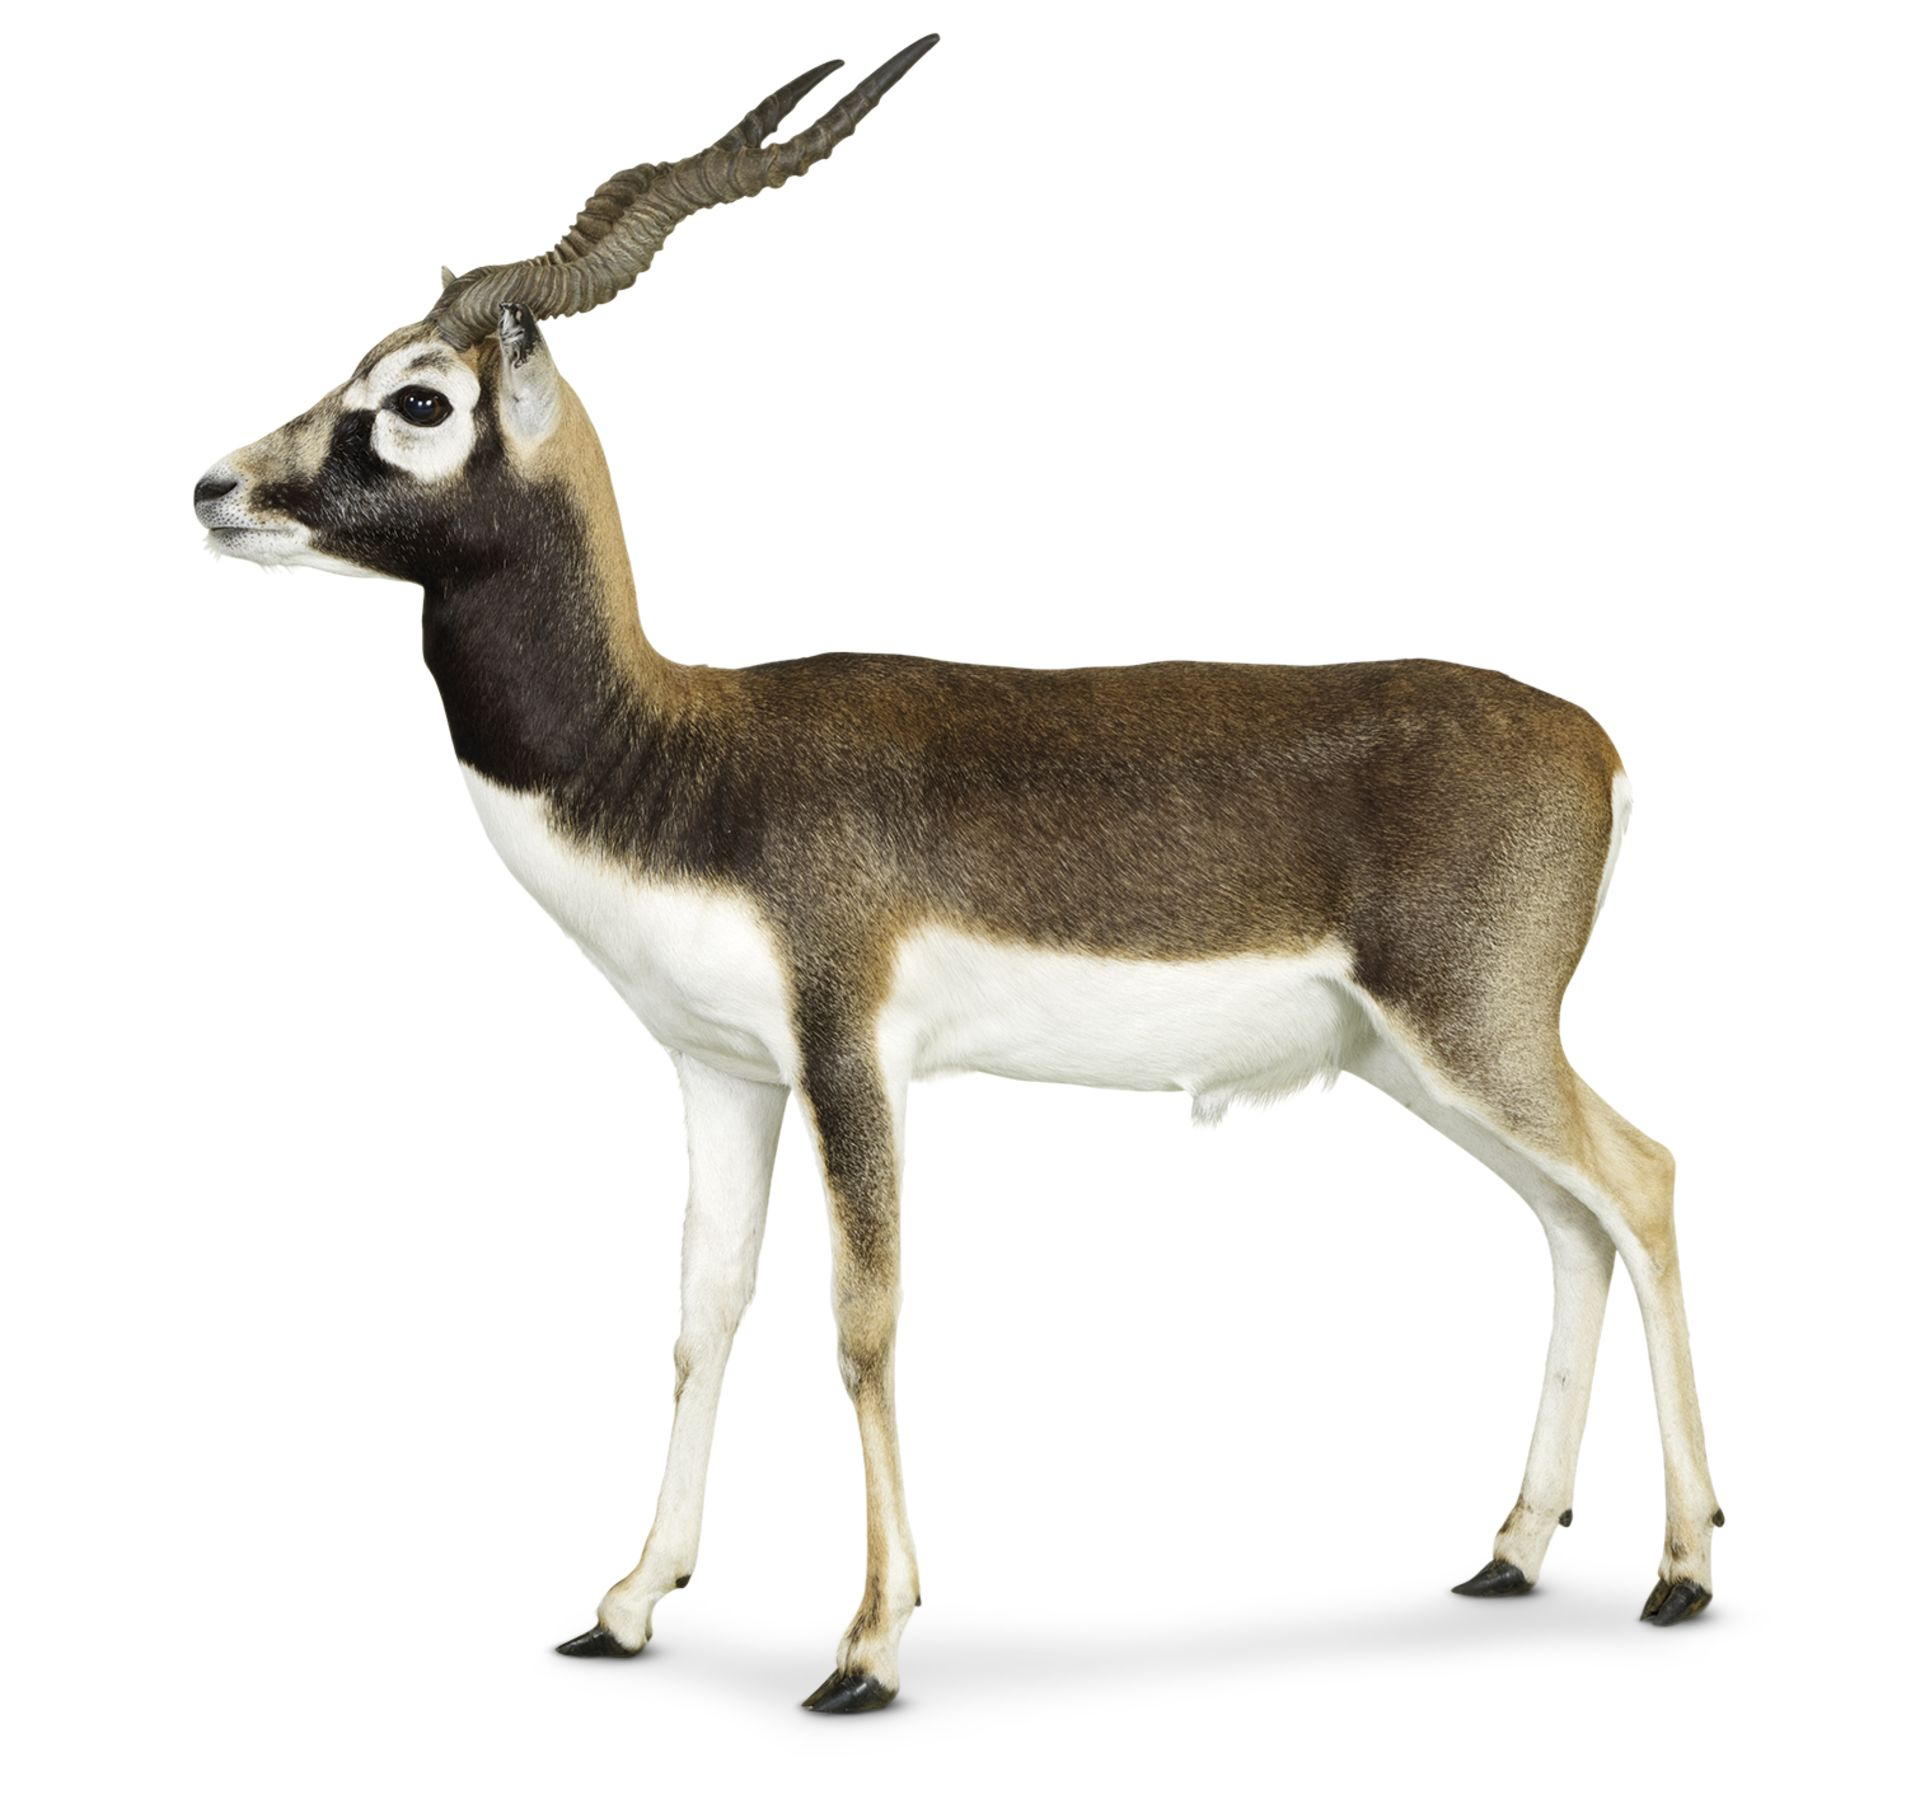 Hoofed Mammals Facts | What Are Hooves | DK Find Out